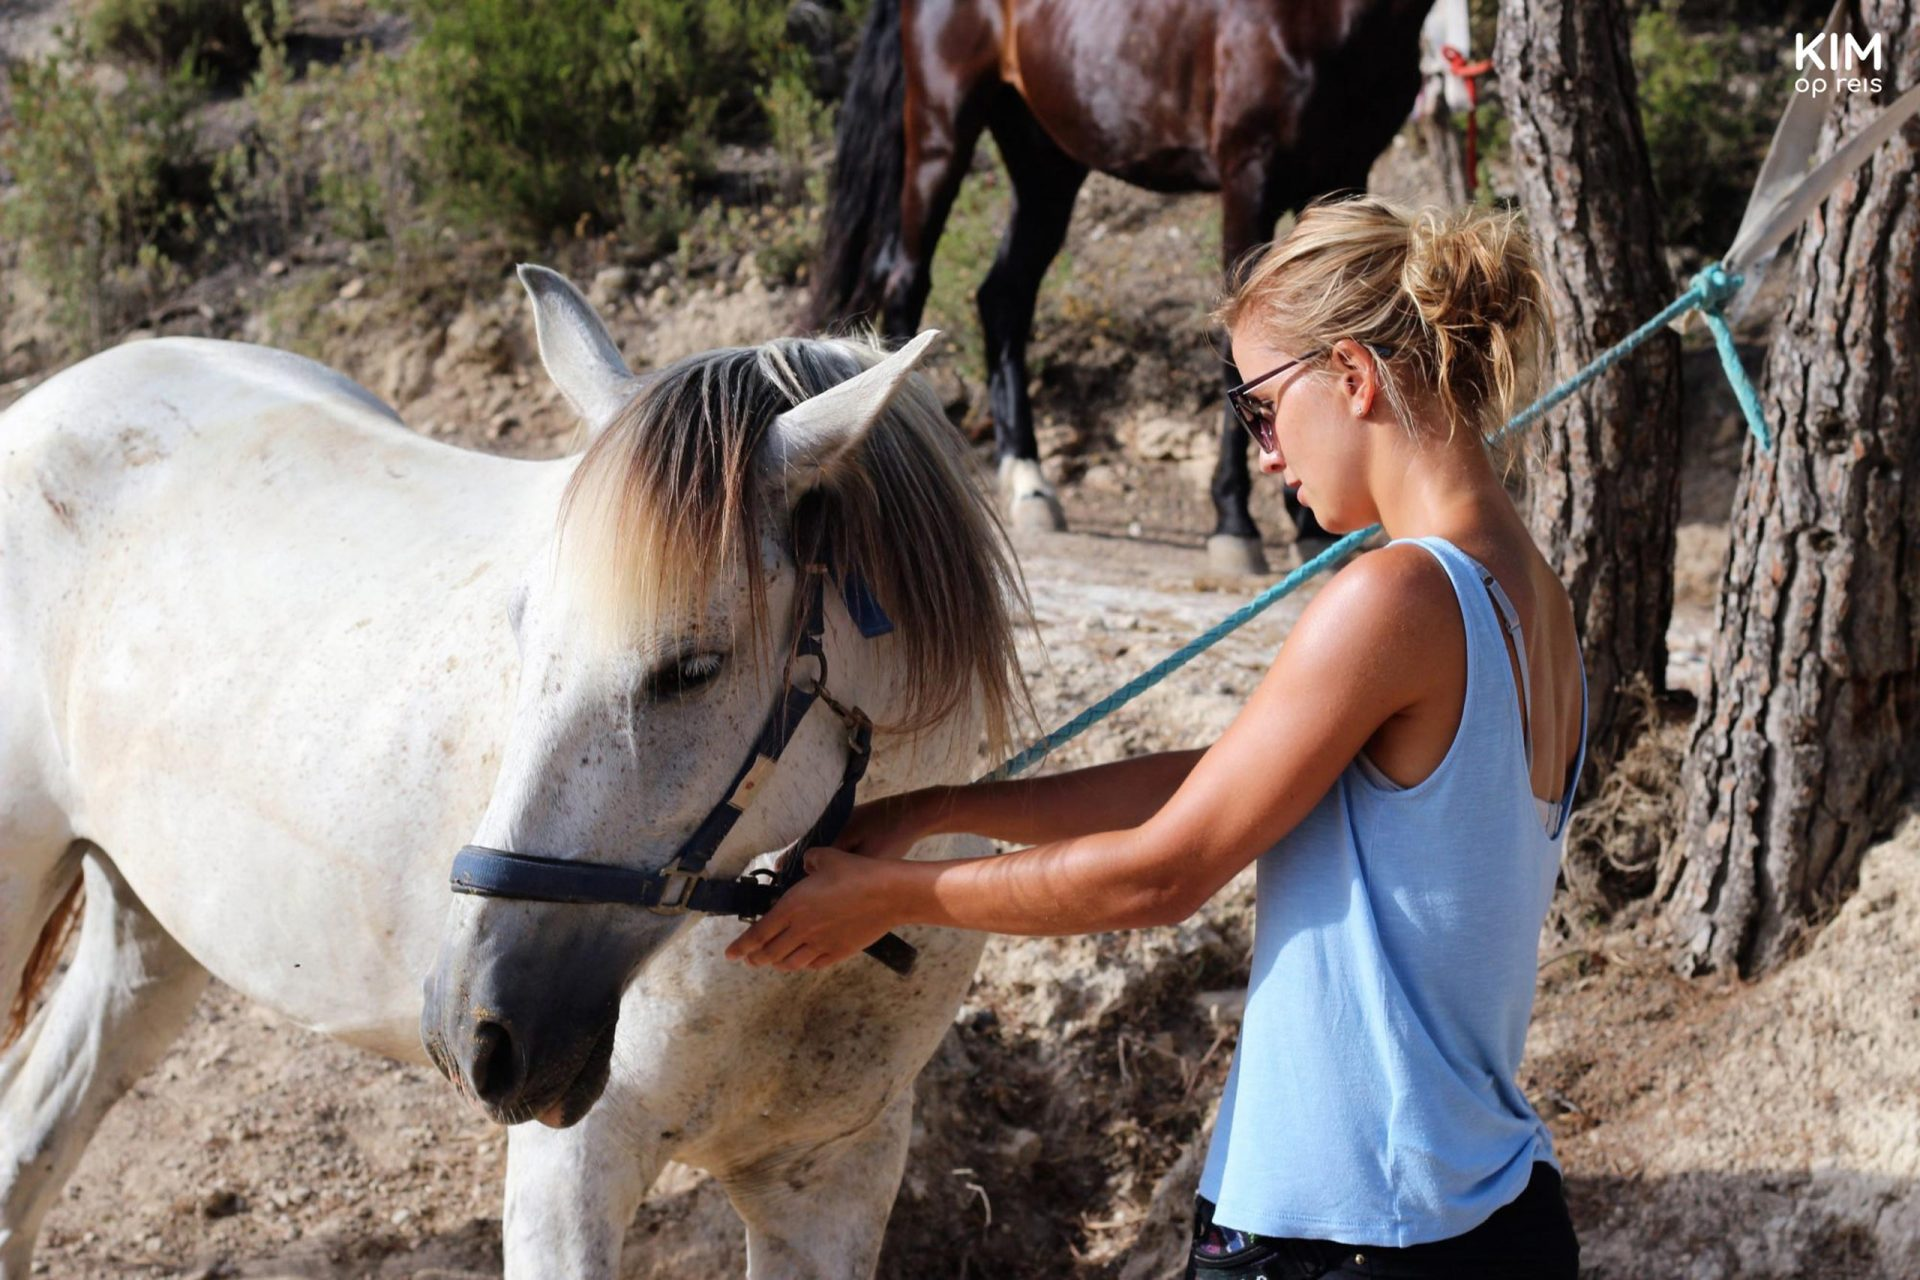 Putting on the halter on the horses - Kim puts on a halter on a white horse